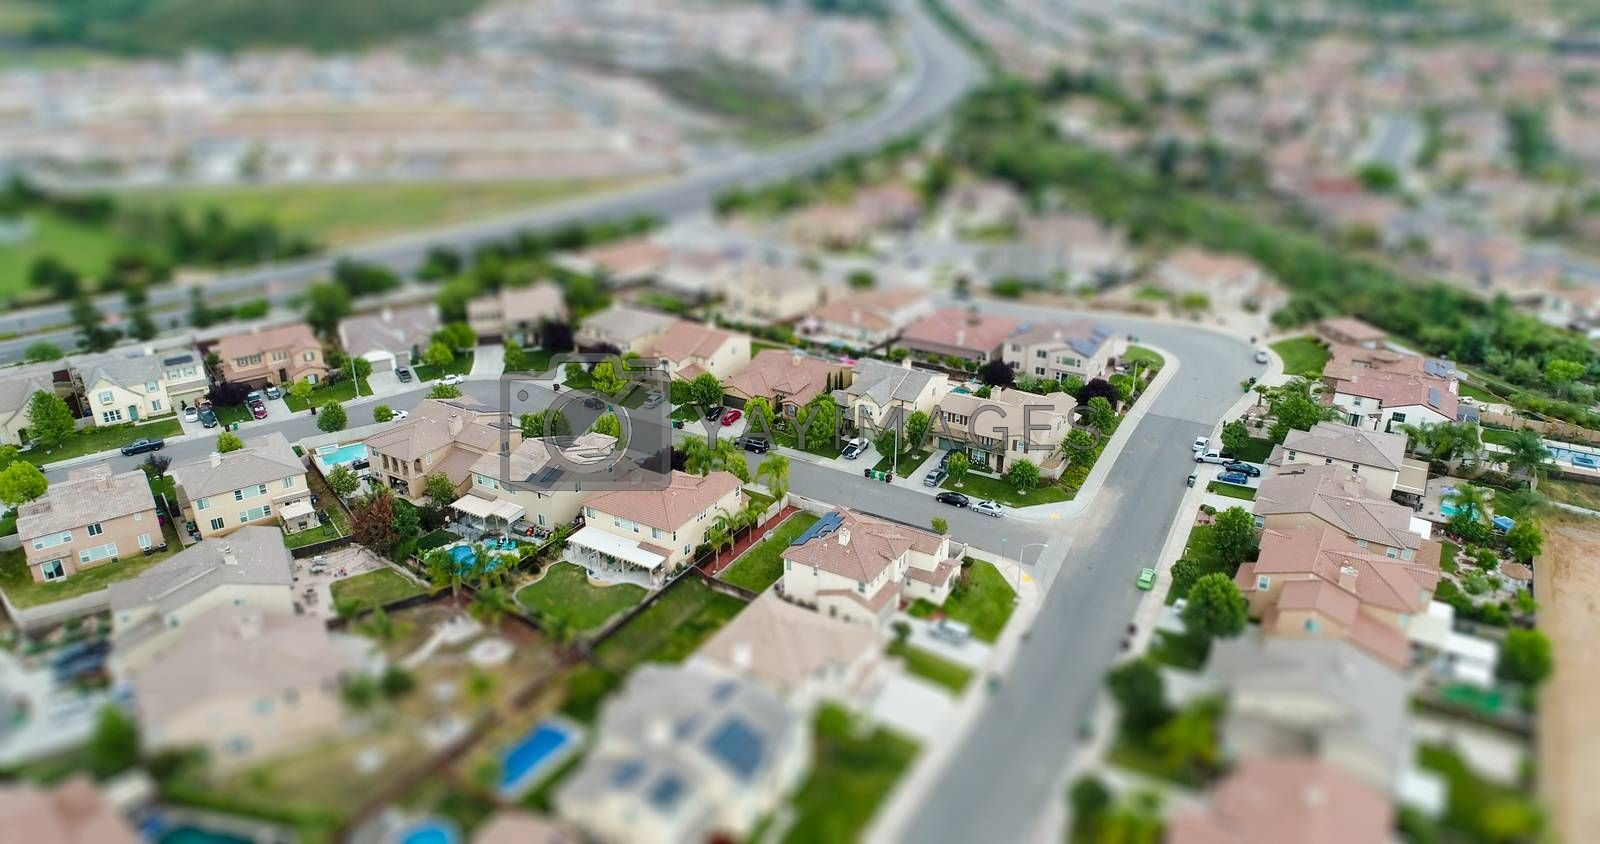 Aerial View of Populated Neigborhood Of Houses With Tilt-Shift B by Feverpitched